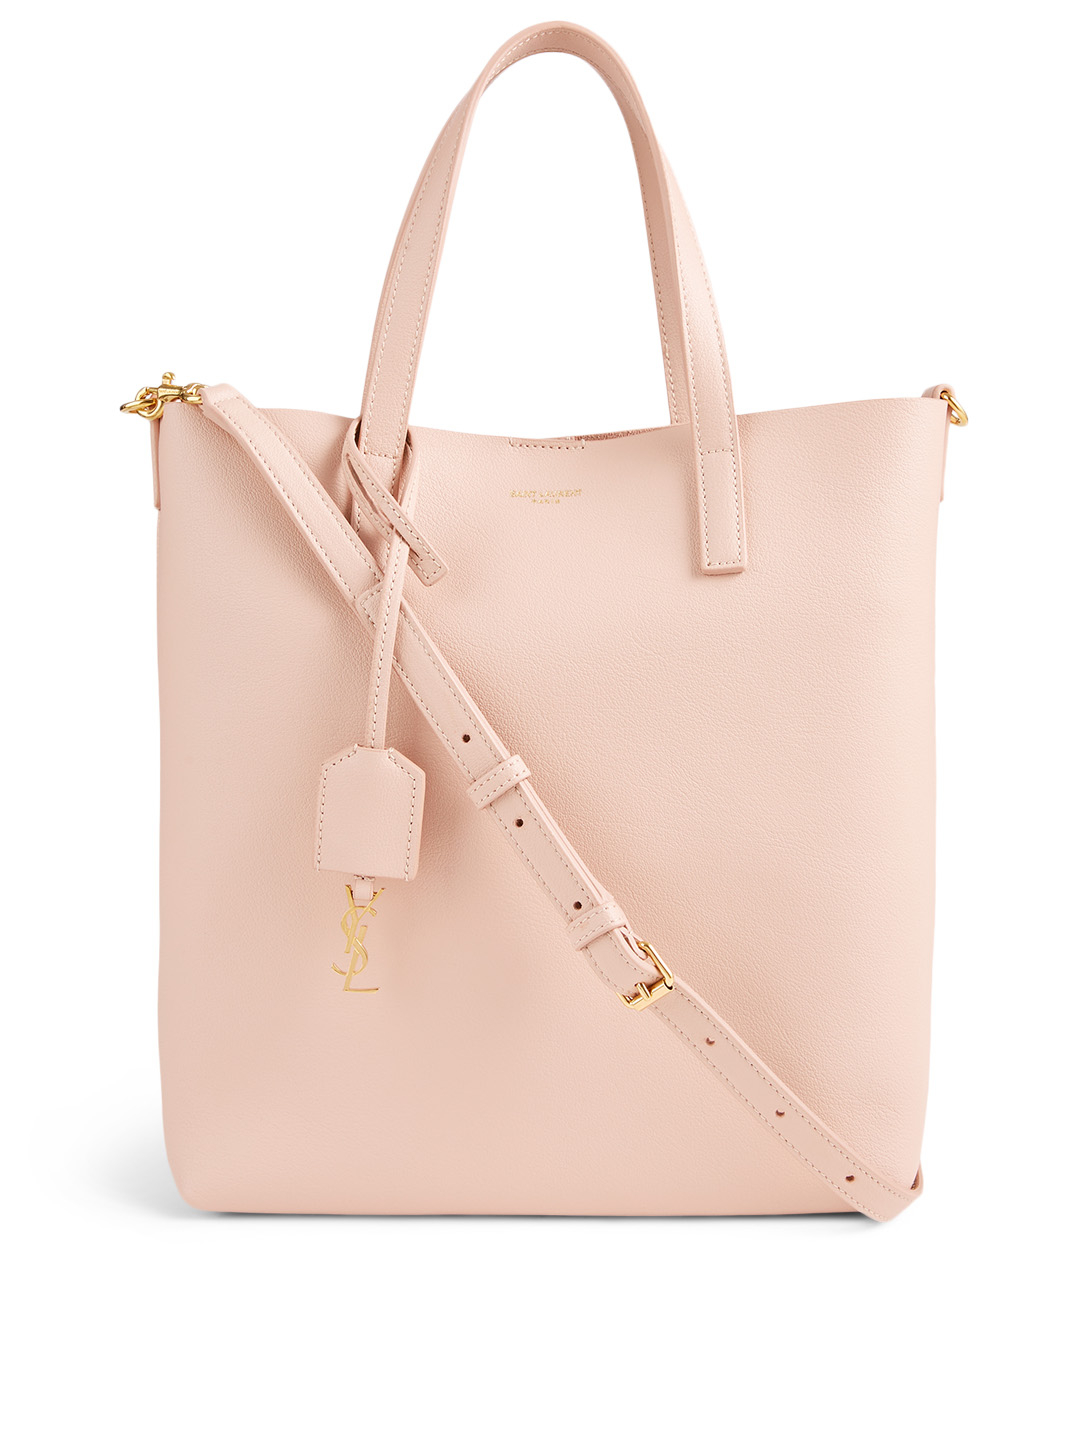 SAINT LAURENT Toy YSL Monogram Leather Bag Women's Pink